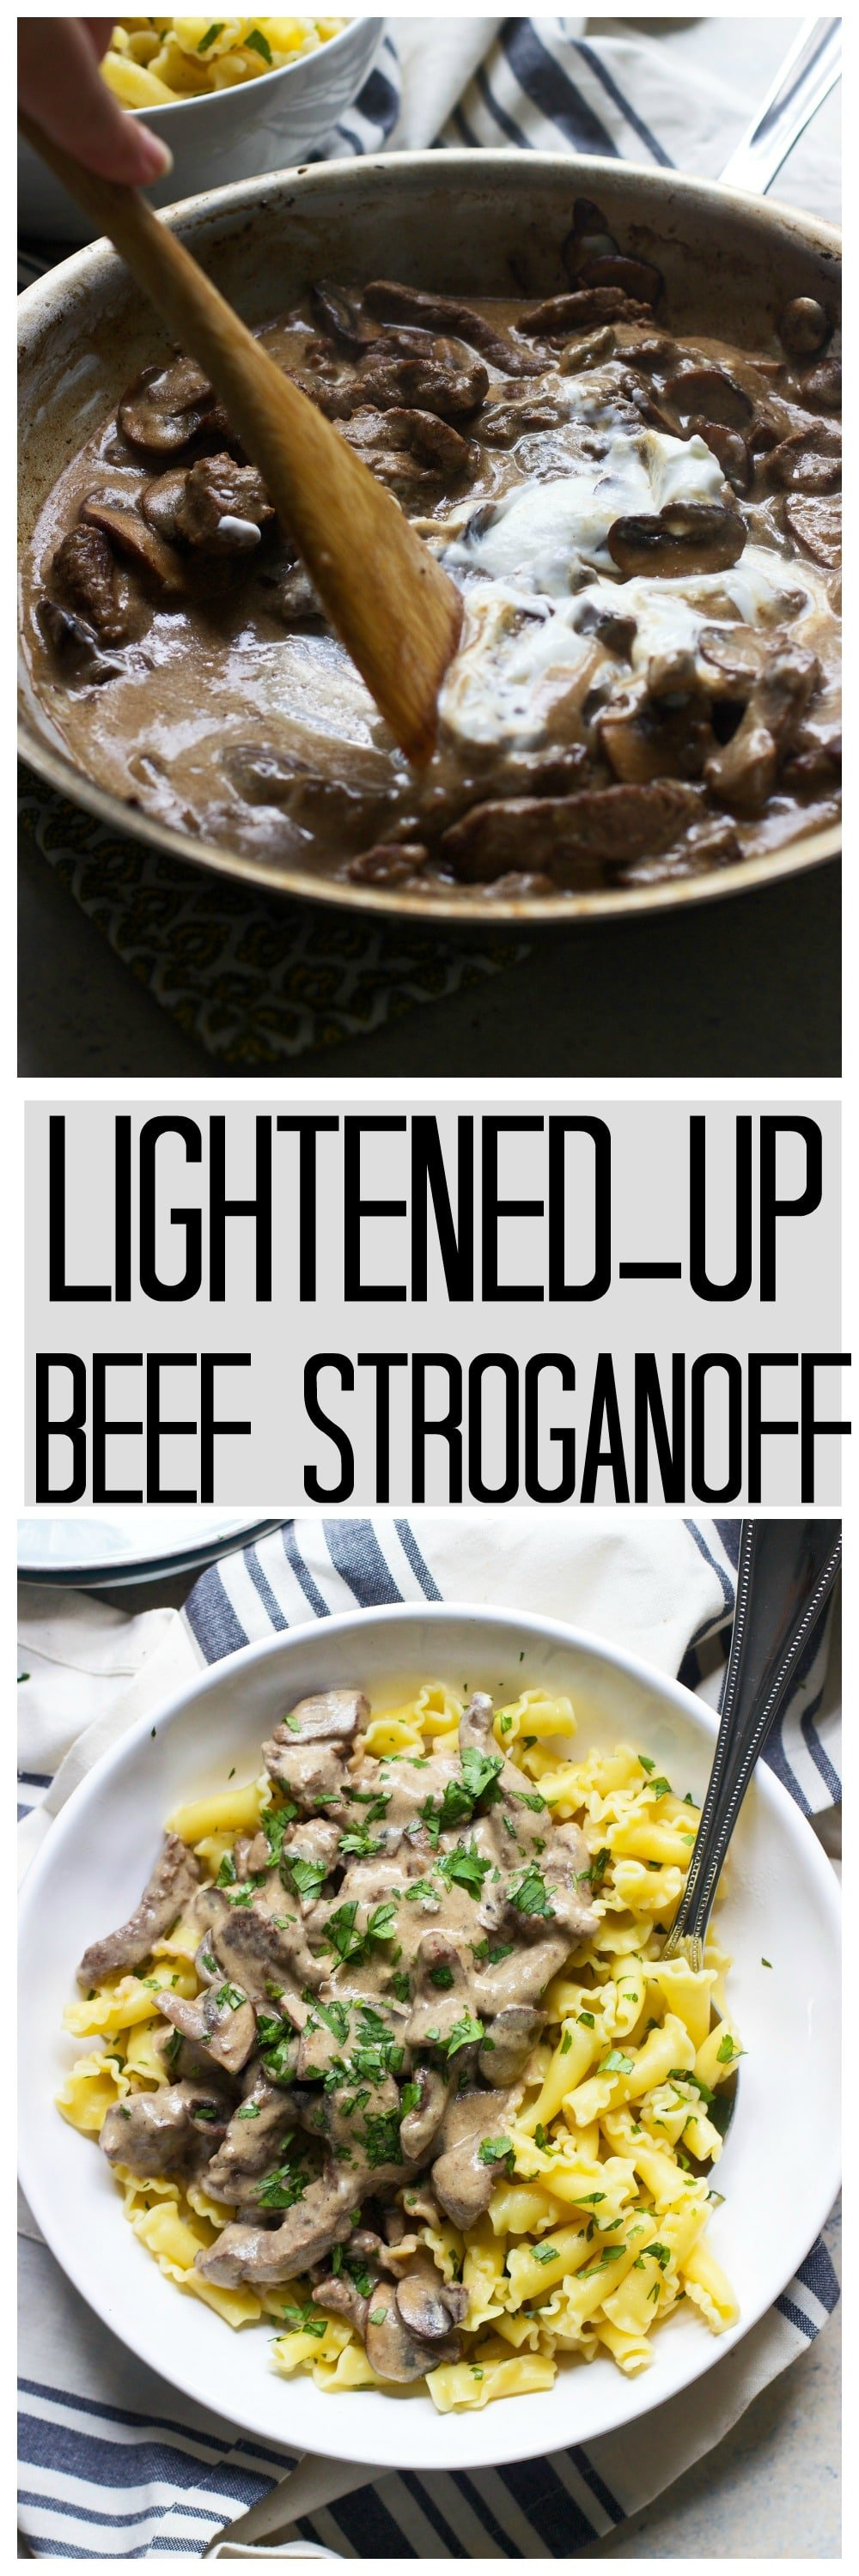 Lightened-Up Beef Stroganoff - Comes together in under 30 minutes and is every bit as delicious as the original!